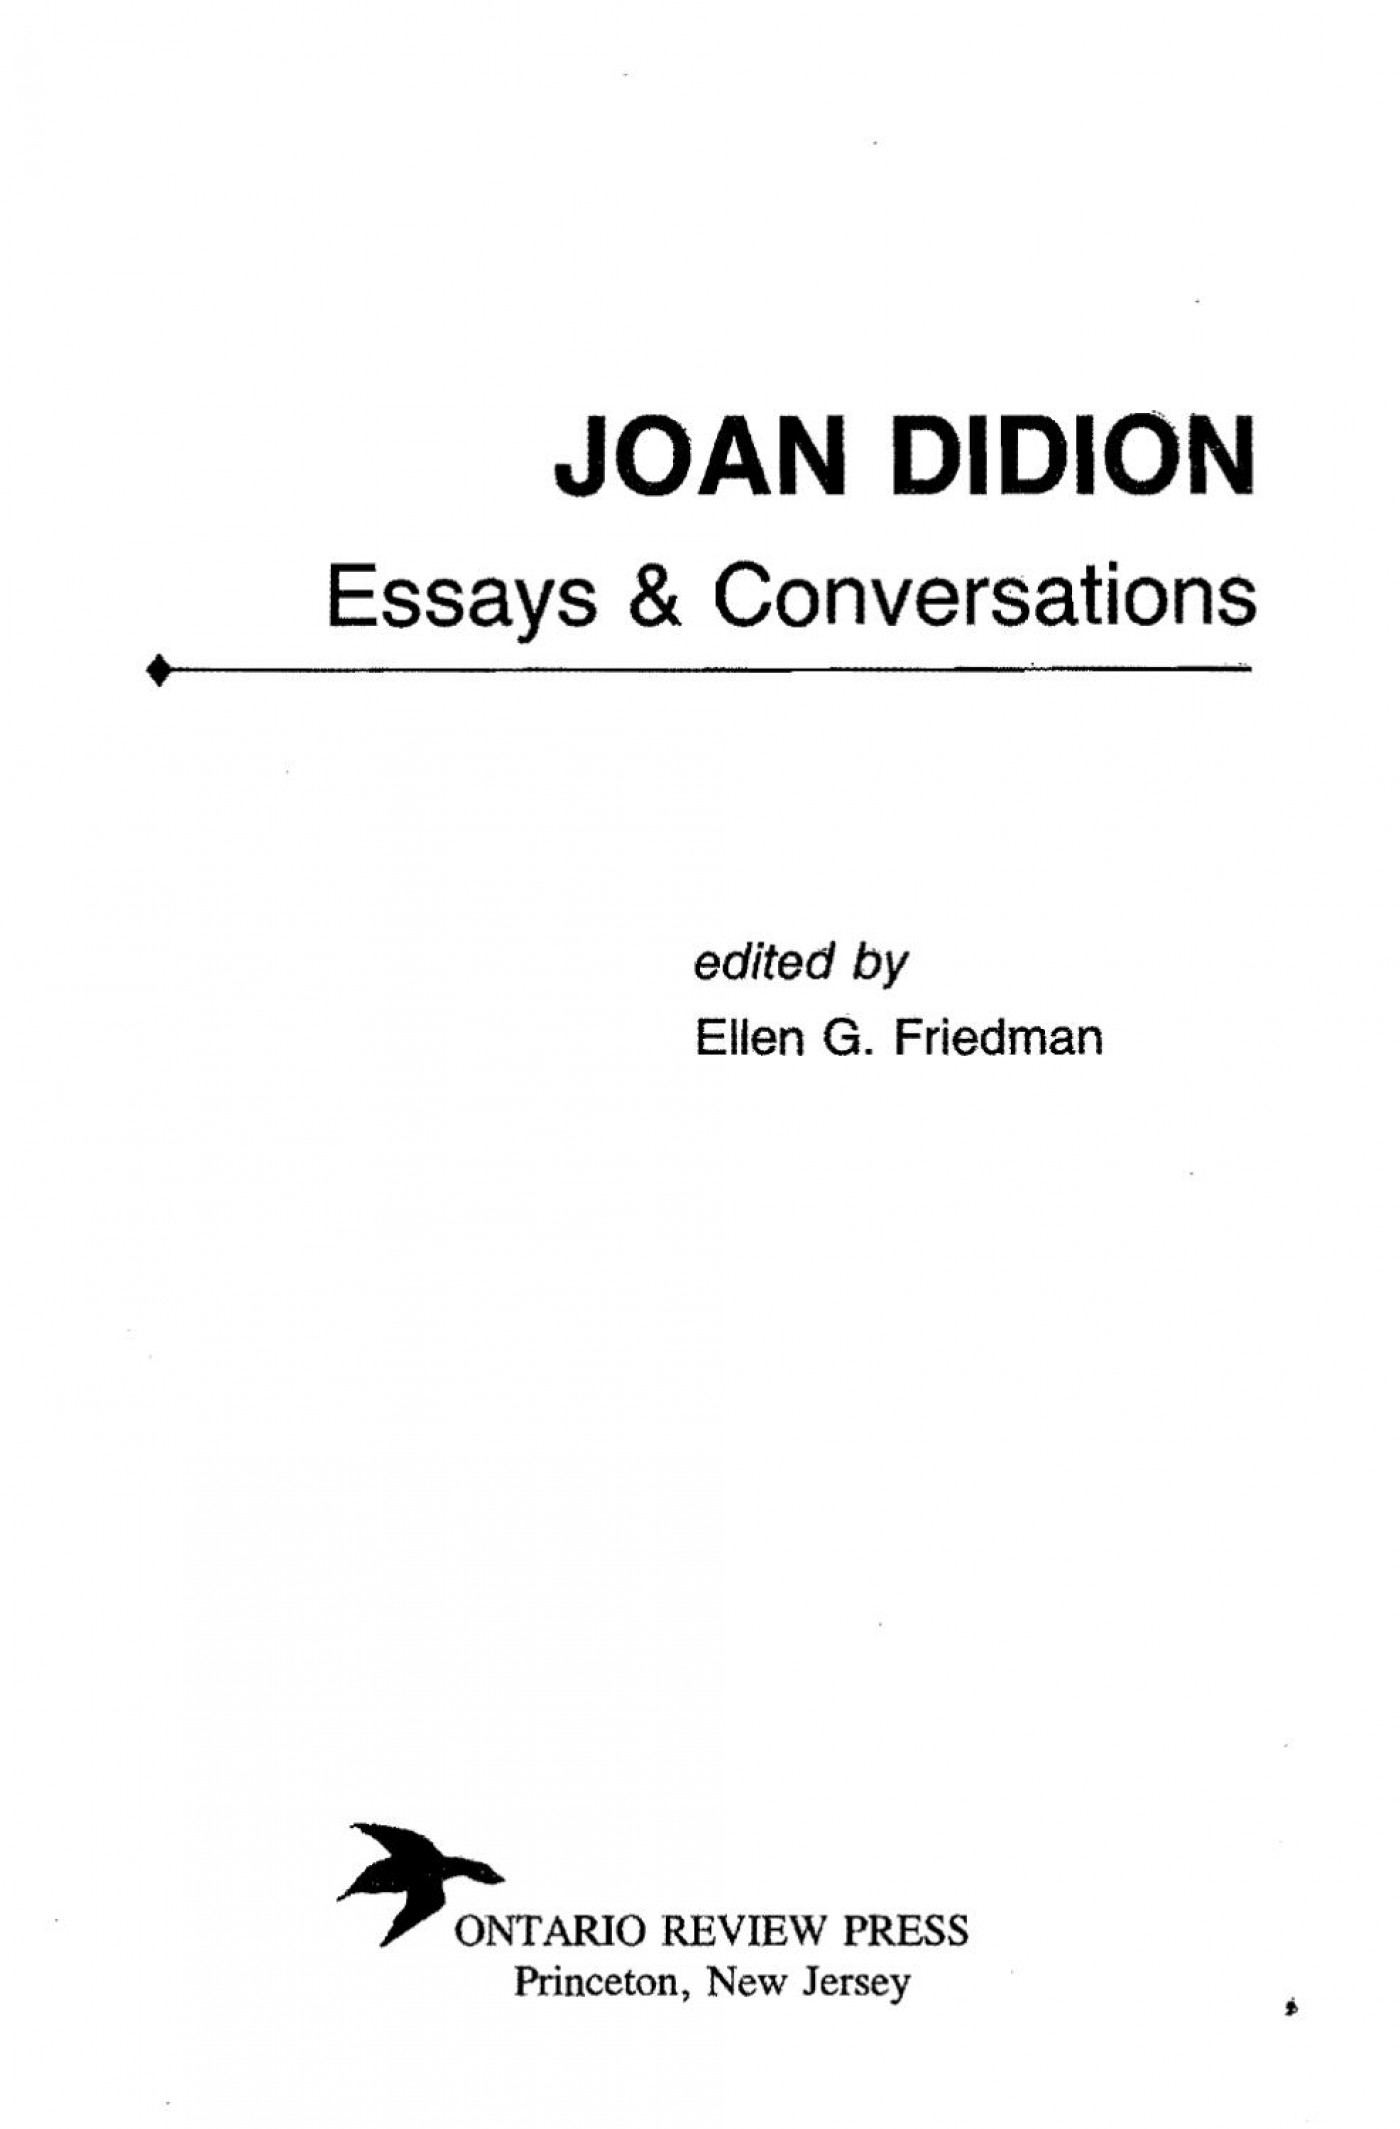 017 Essay Example Page 1 Joan Didion Singular Essays Collections On Santa Ana Winds Amazon 1400